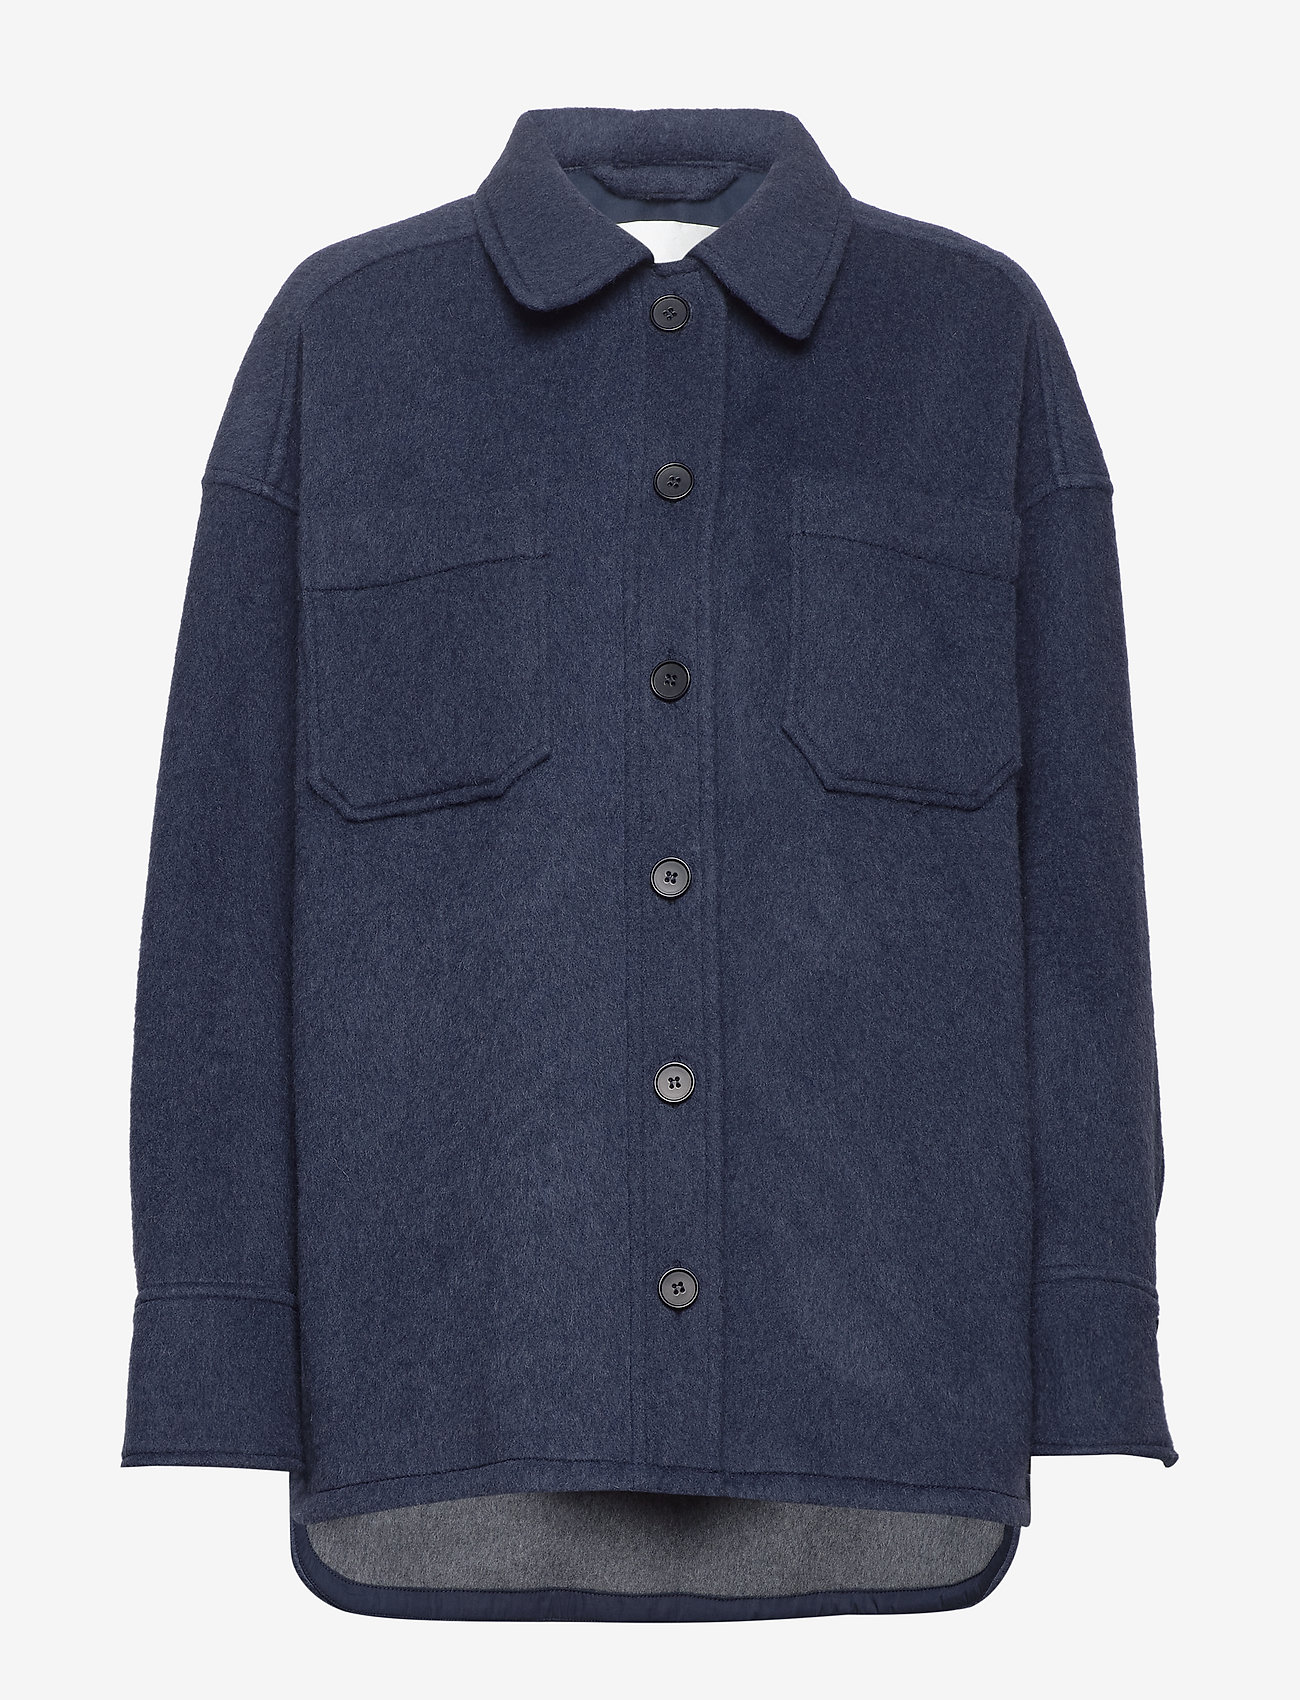 Fall Winter Spring Summer - Sealiner Wool - overshirts - blue nights - 1